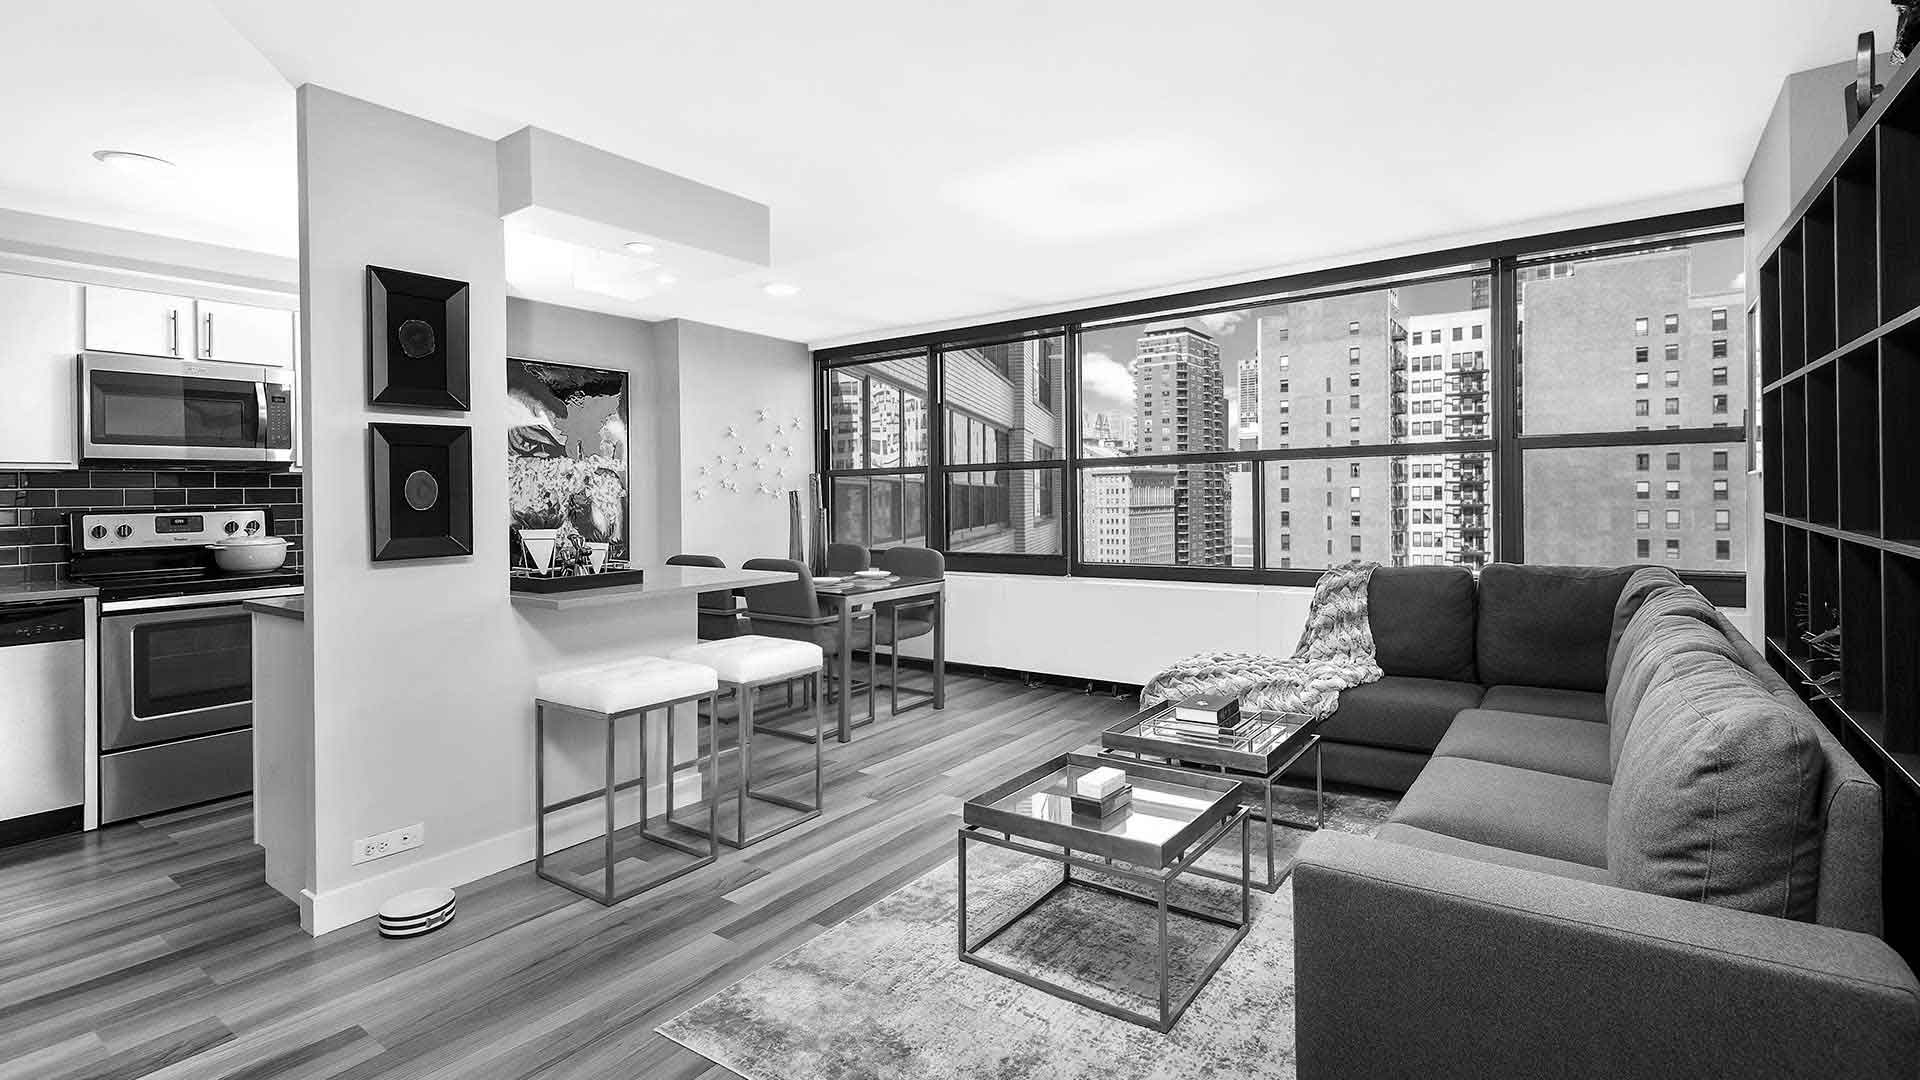 A living room in a residence at Eleven Thirty. A couch goes off to the right leading the windows that show the city outside. The kitchen is off to the left and a dining area further back by the windows.